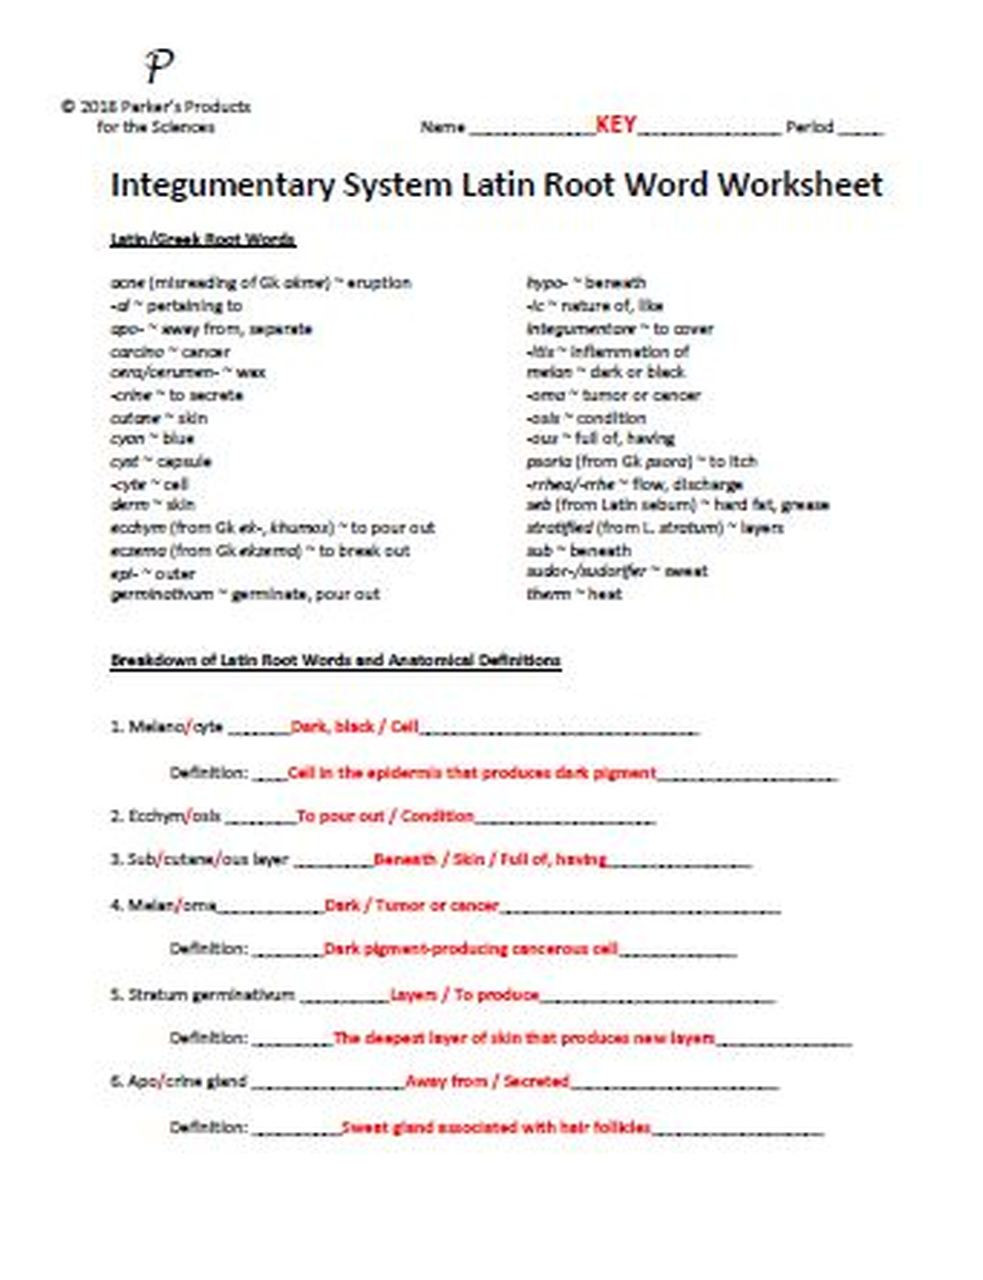 Root Word Worksheets Middle School Integumentary System Latin Root Word Worksheet